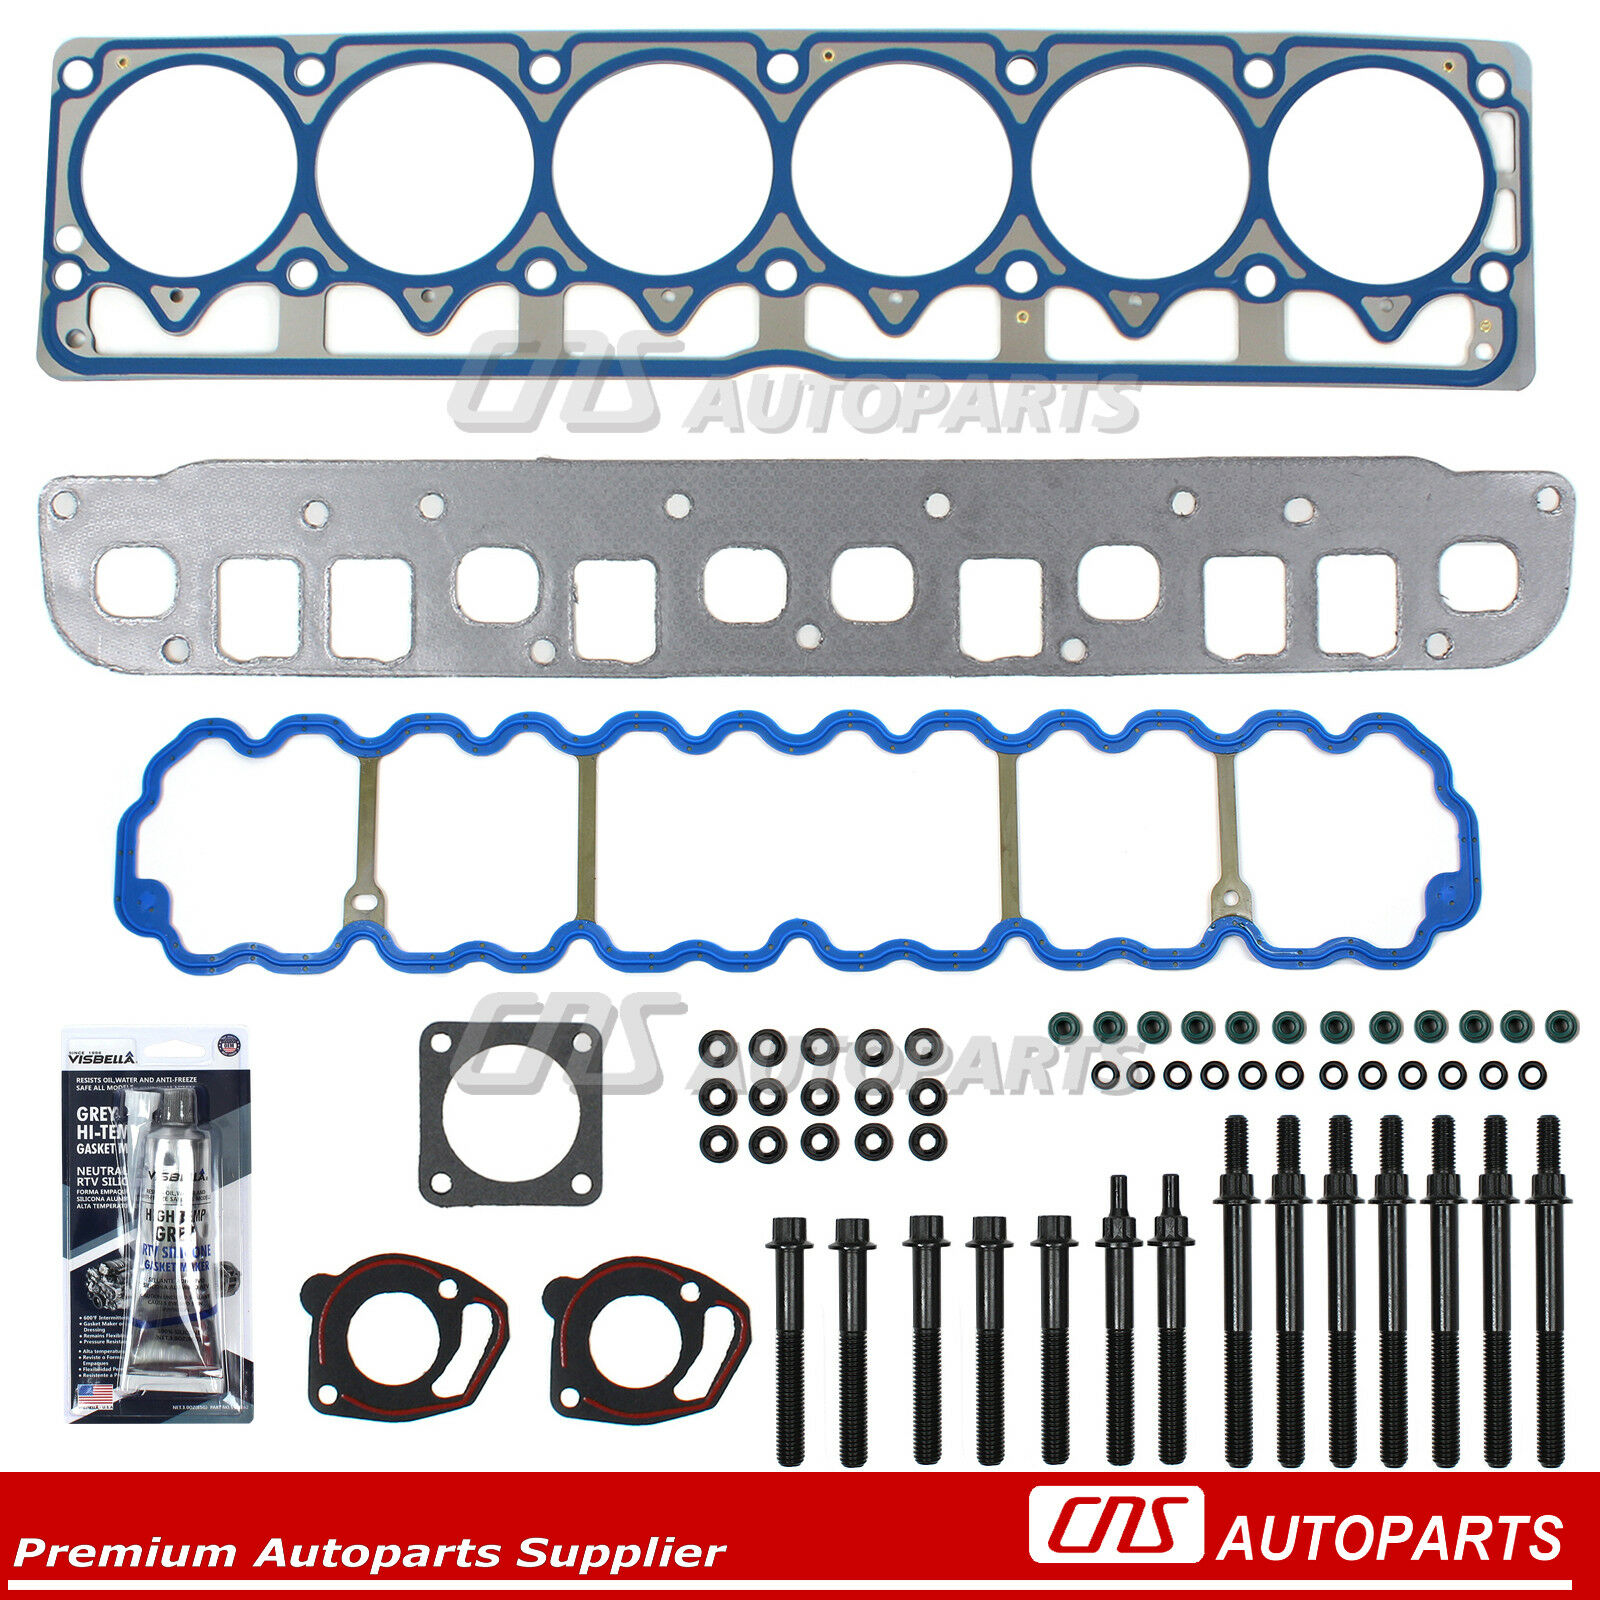 Jeep Grand Cherokee Tj Wrangler 40l 242 L6 Head Gasket Bolts Kit 1 Of 4free Shipping